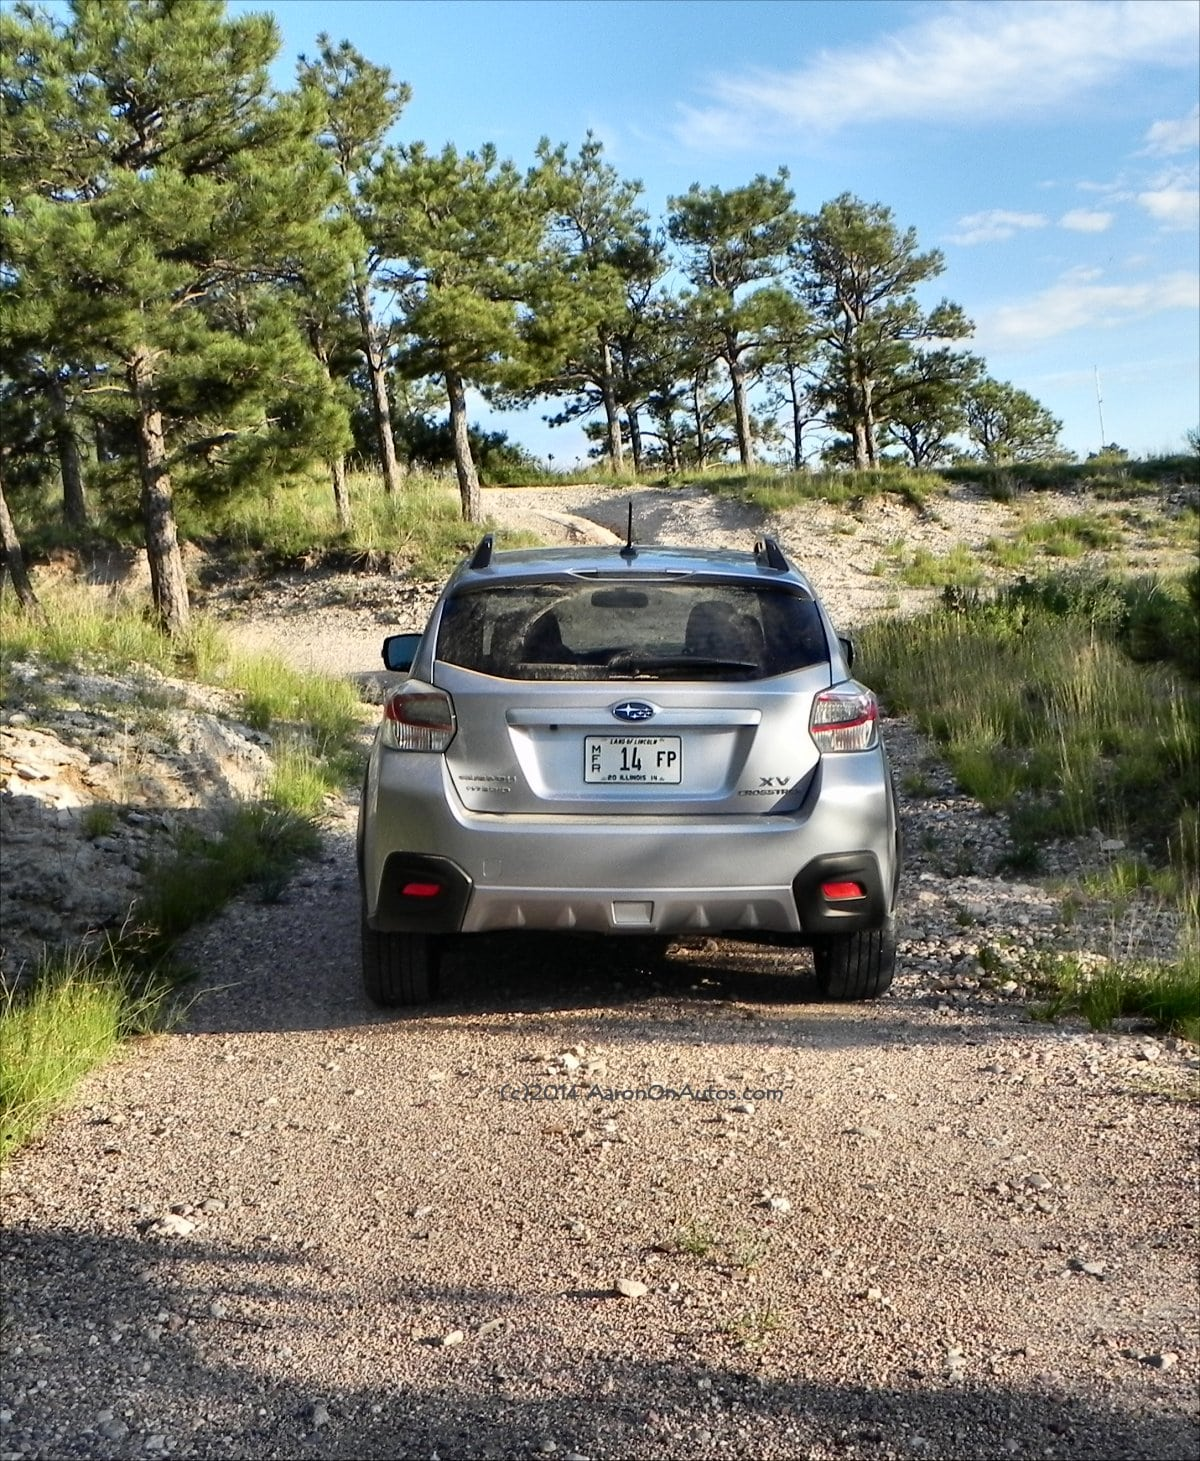 2014 Subaru XV Crosstrek Hybrid Is A Good First